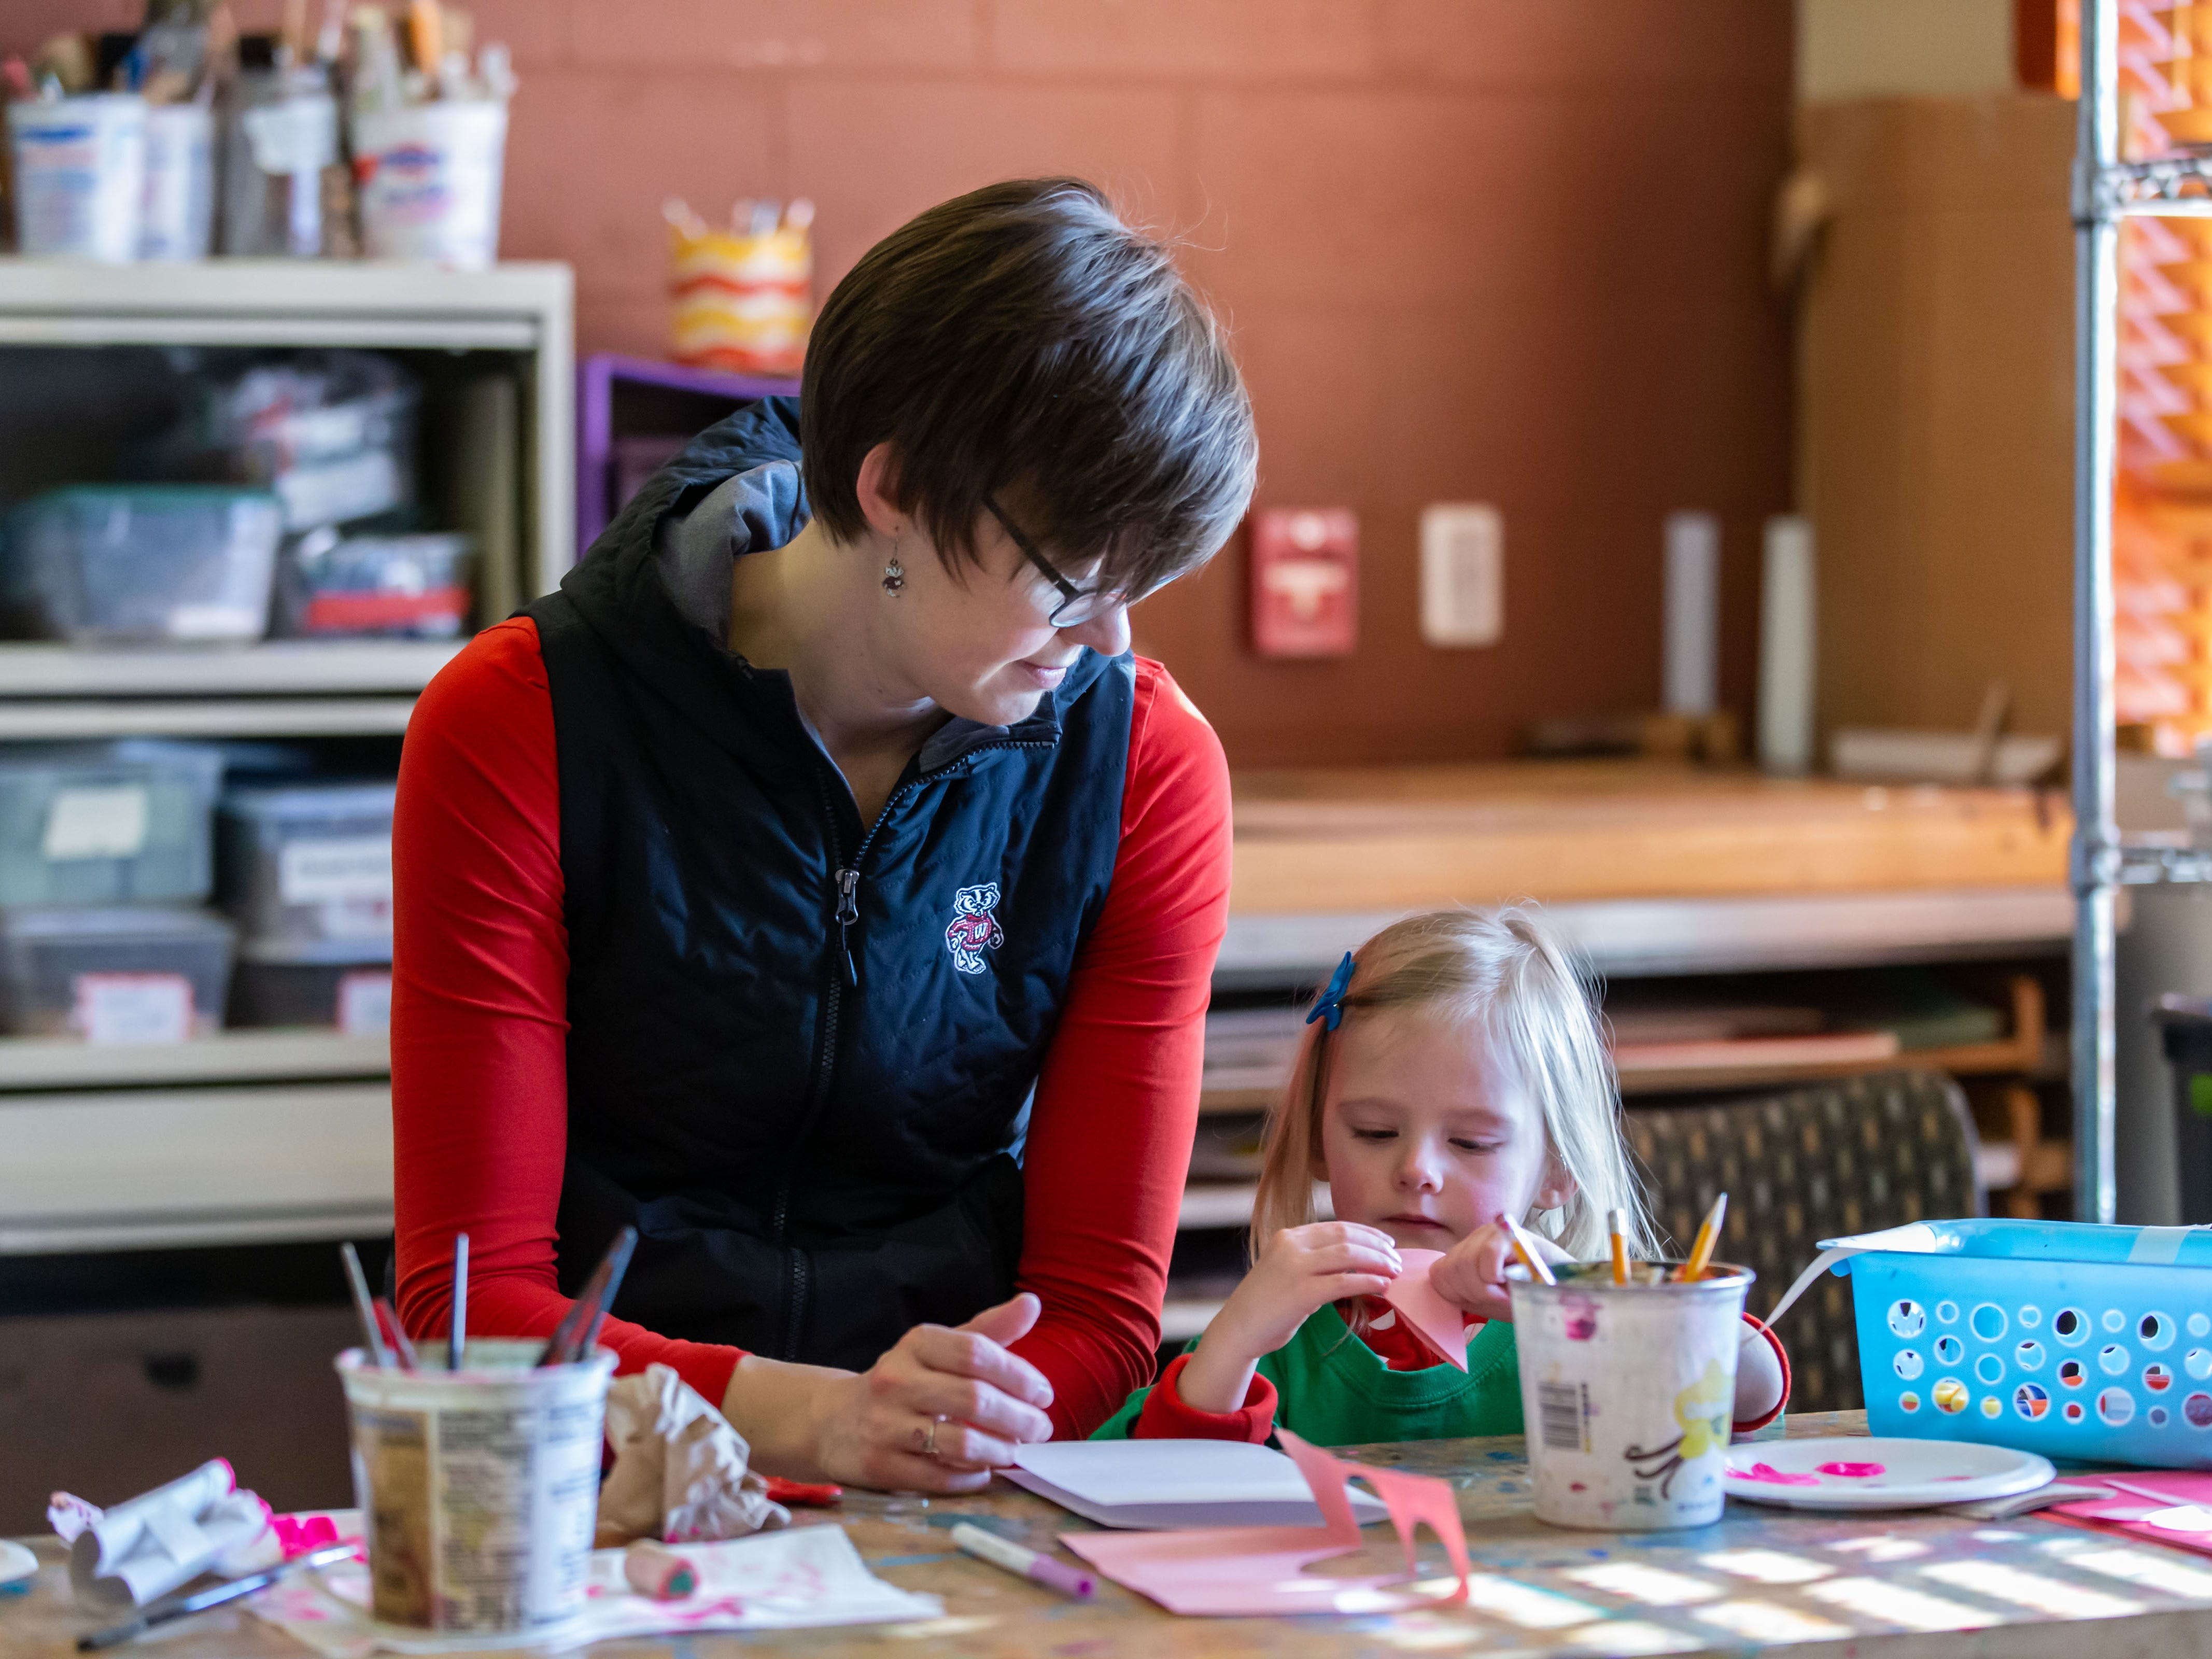 Two-year-old Eva Aasen of Pewaukee creates a Valentine's Day card with her mother Kristin during the Free Family Art Workshop at the Sharon Lynne Wilson Center for the Arts in Brookfield on Saturday, Feb. 9, 2019. The free art workshops are held from 10 a.m. to noon on the second Saturday of each month. For more info visit wilson-center.com/classes.